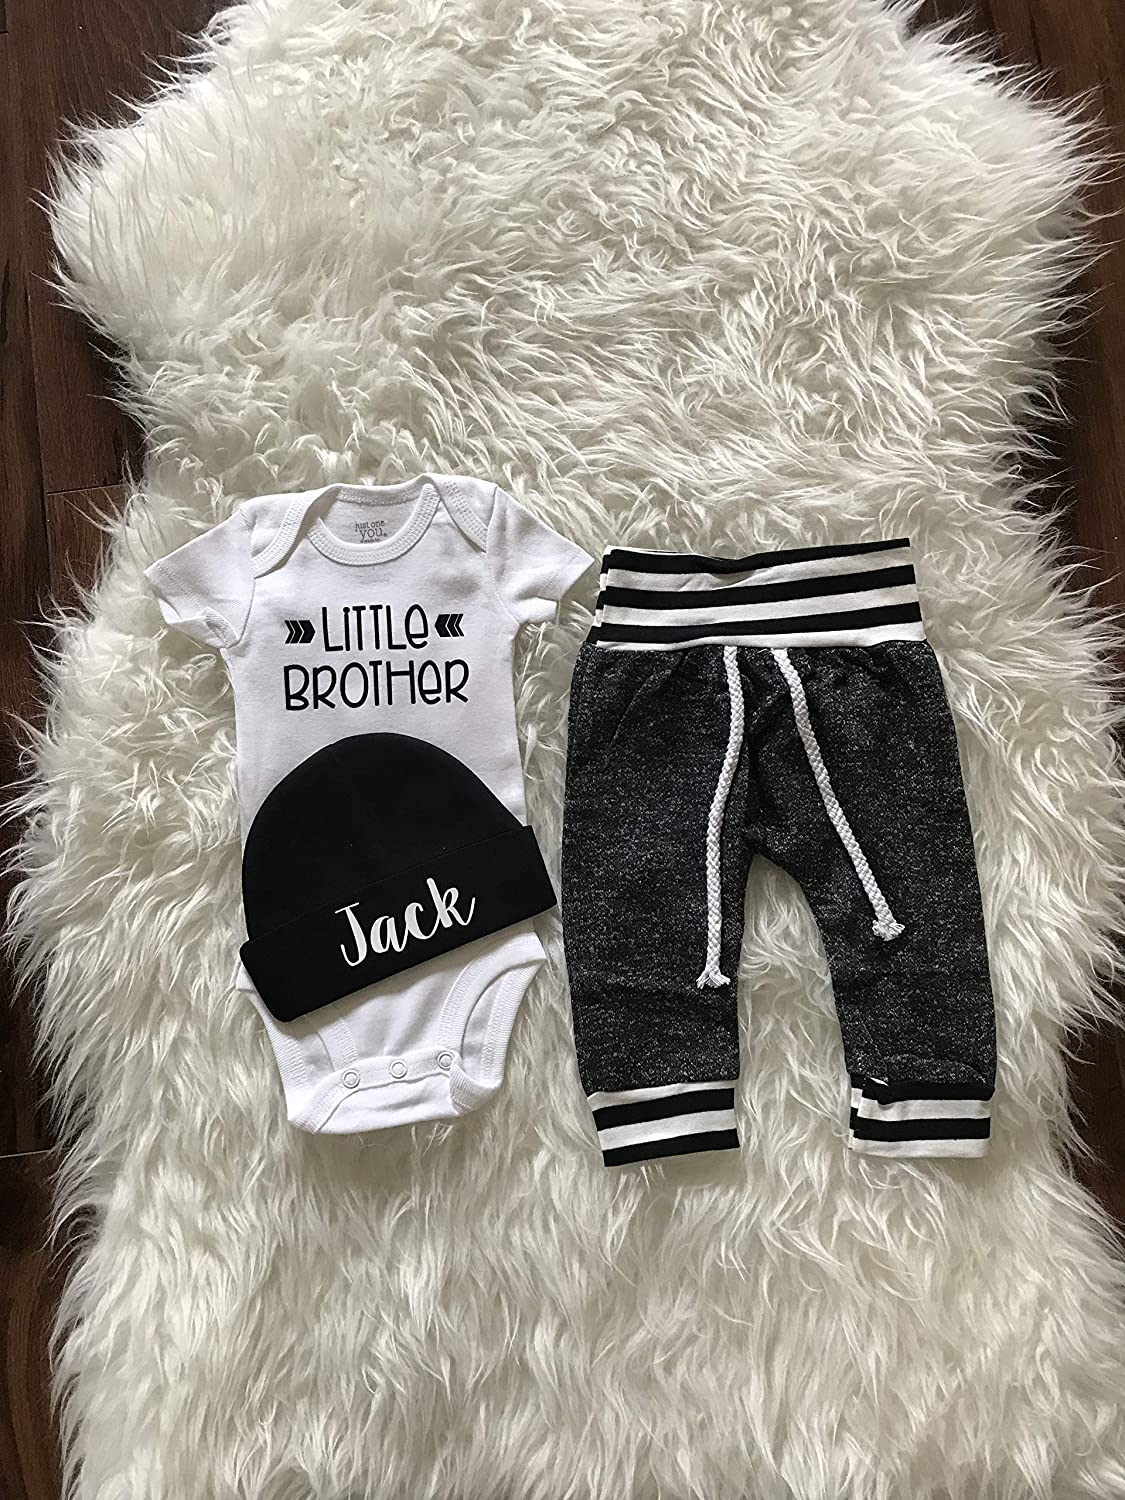 LITTLE BROTHER outfit Baby Boy Coming Home Outfit Personalized Infant Baby outfit and Hat Monogrammed Baby Boy Baby Shower Gift